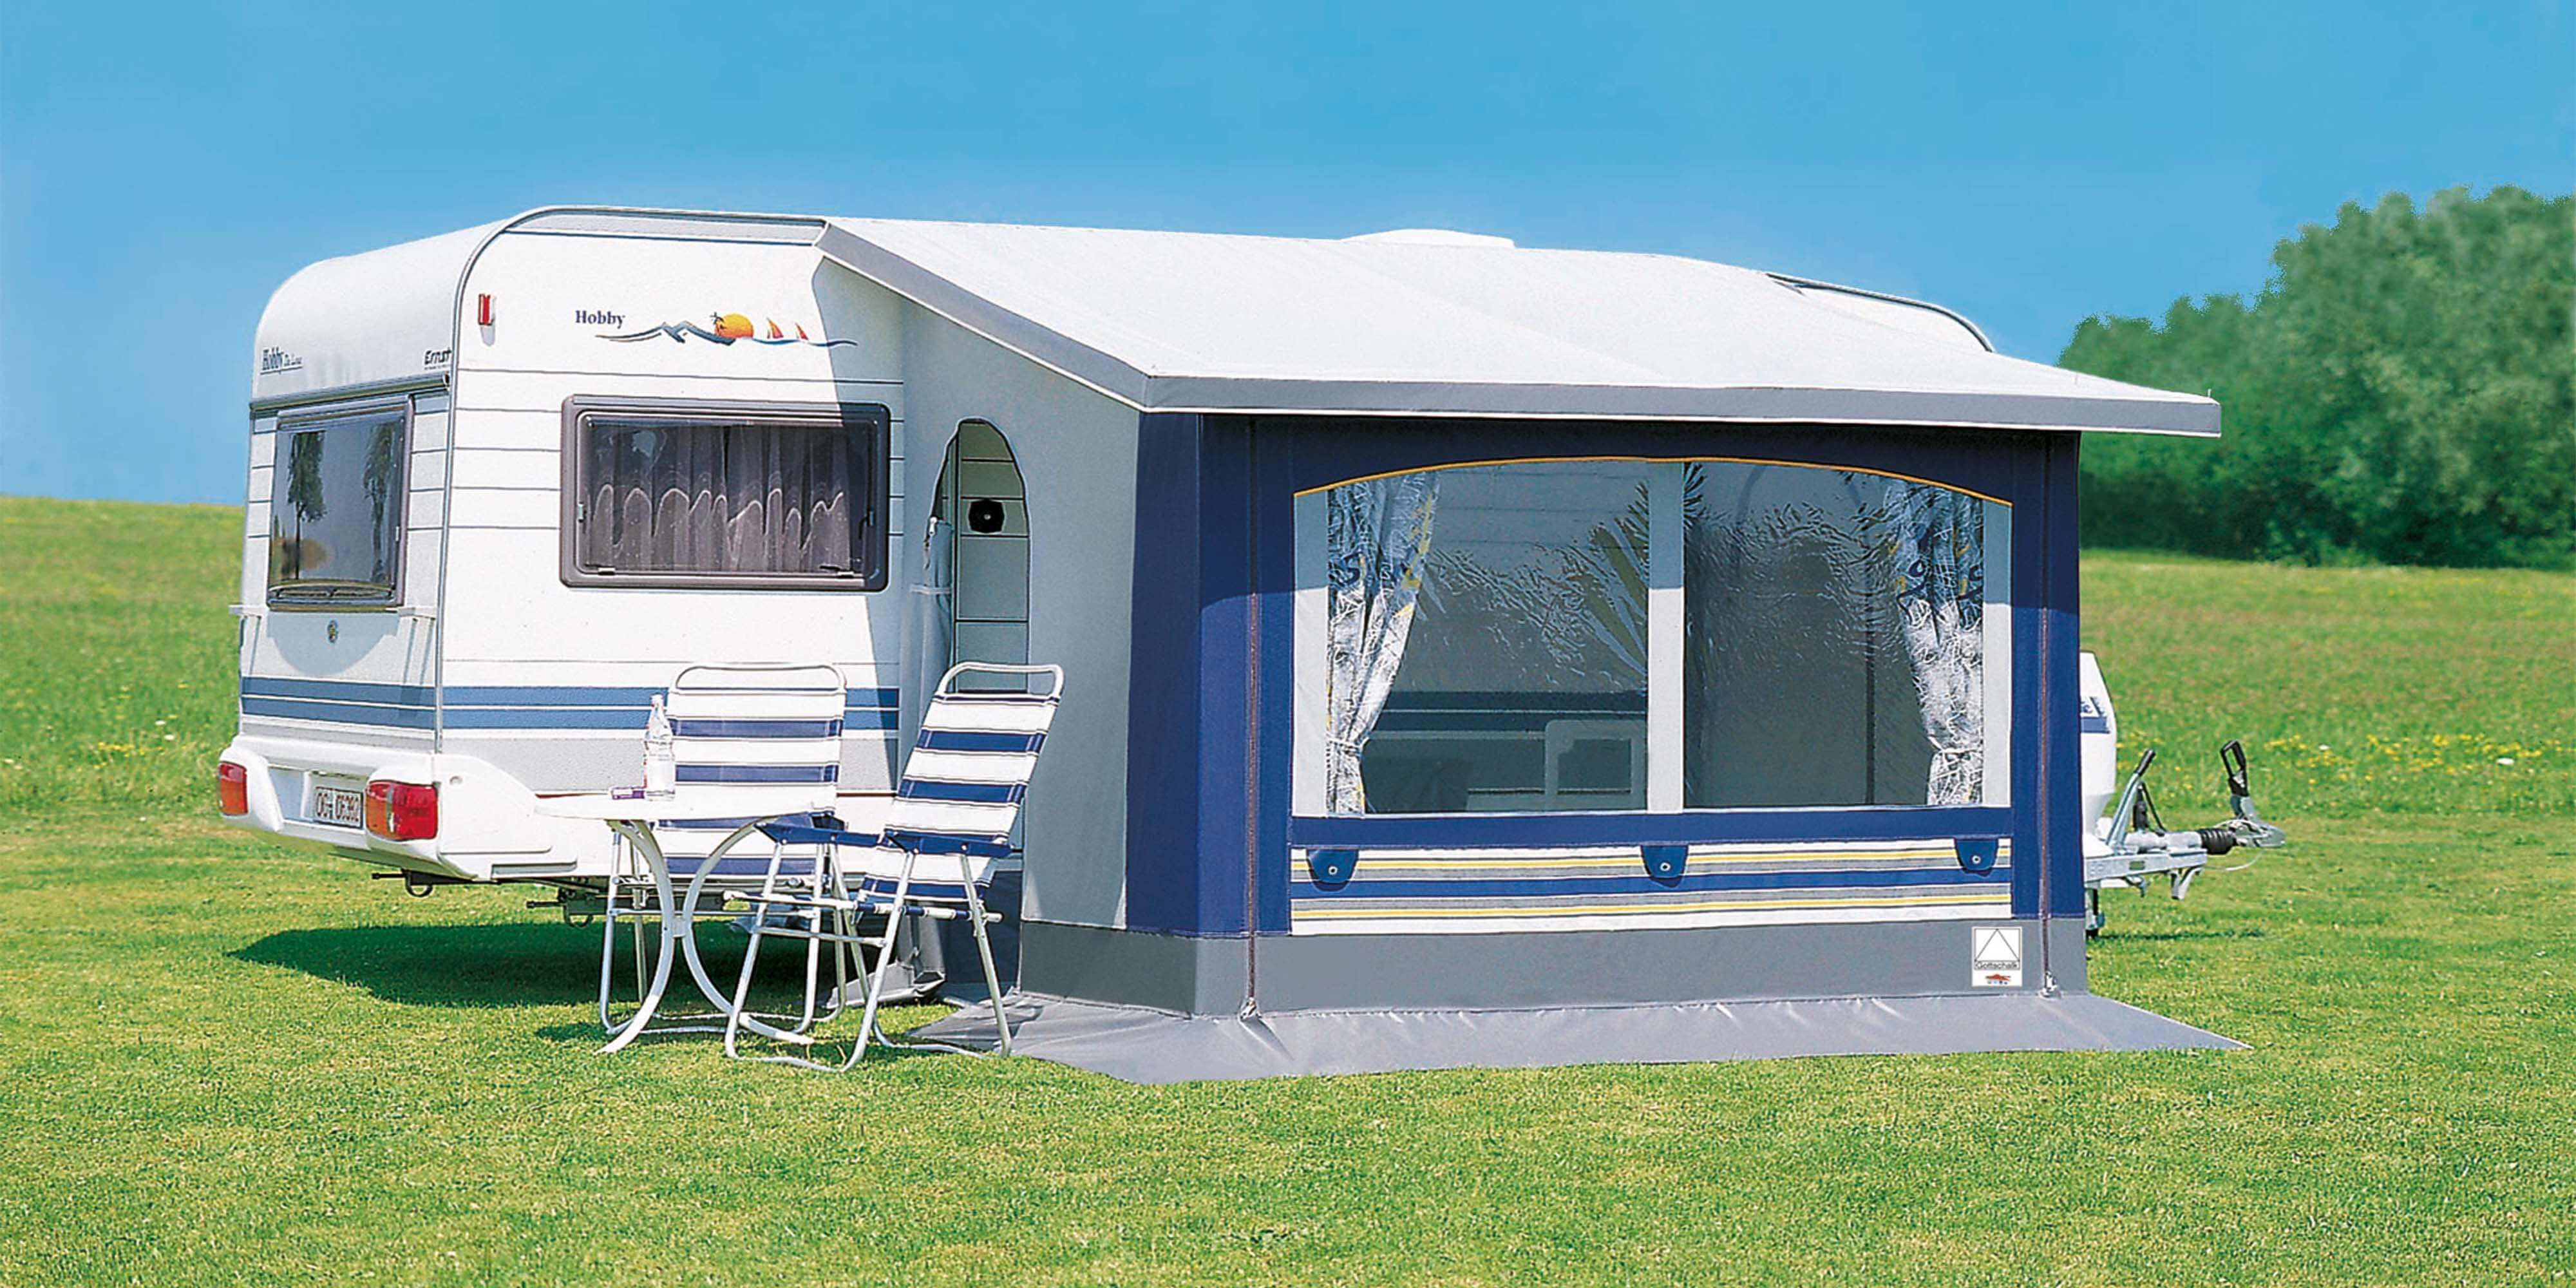 Camping Awnings Mehler Texnologies Textiles To Transform